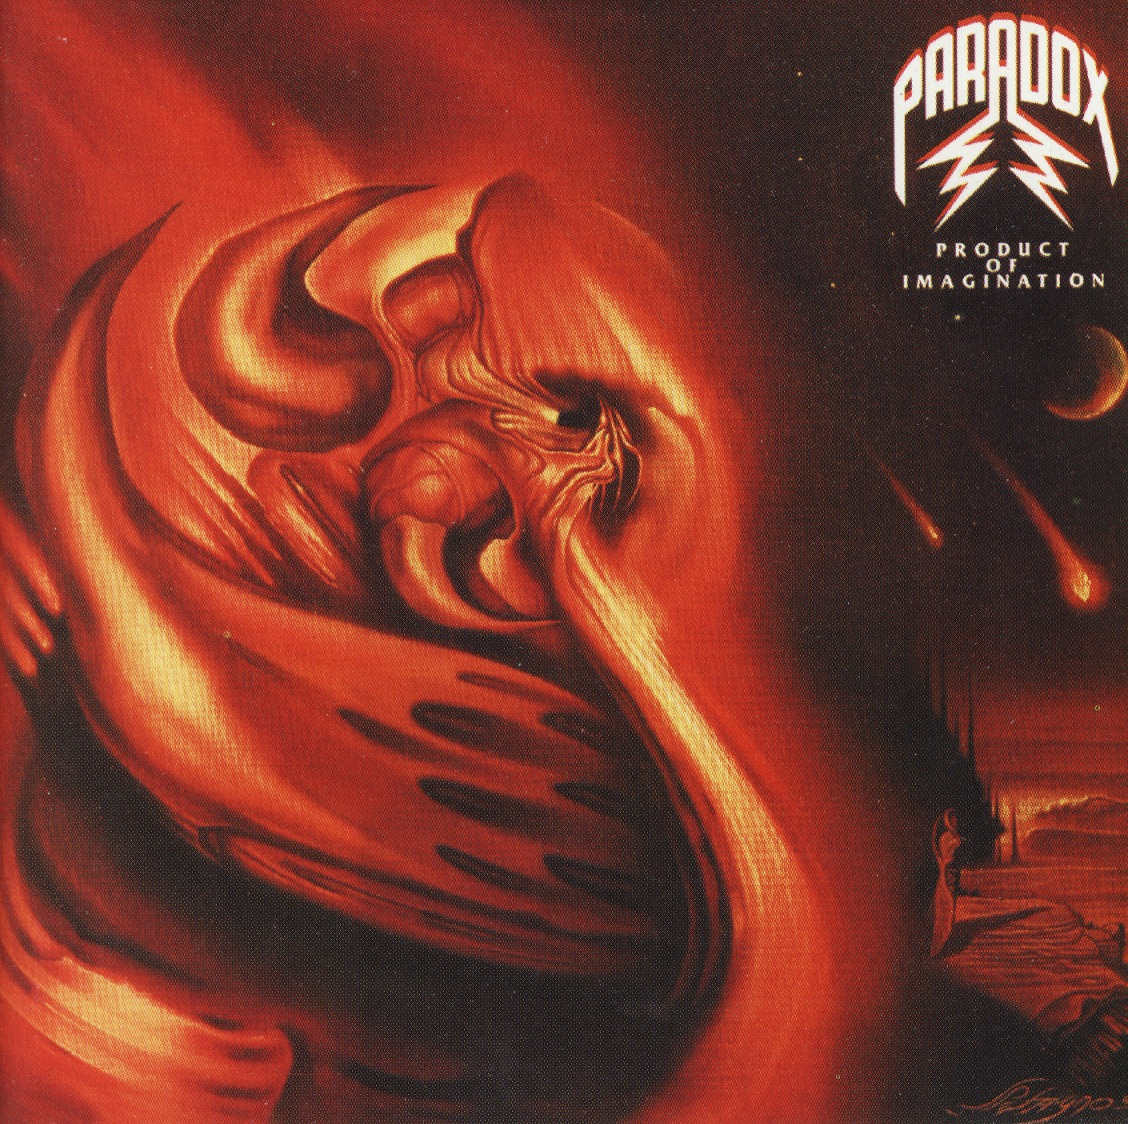 PARADOX (Germany) / Product Of Imagination + 4 (Germany edition)